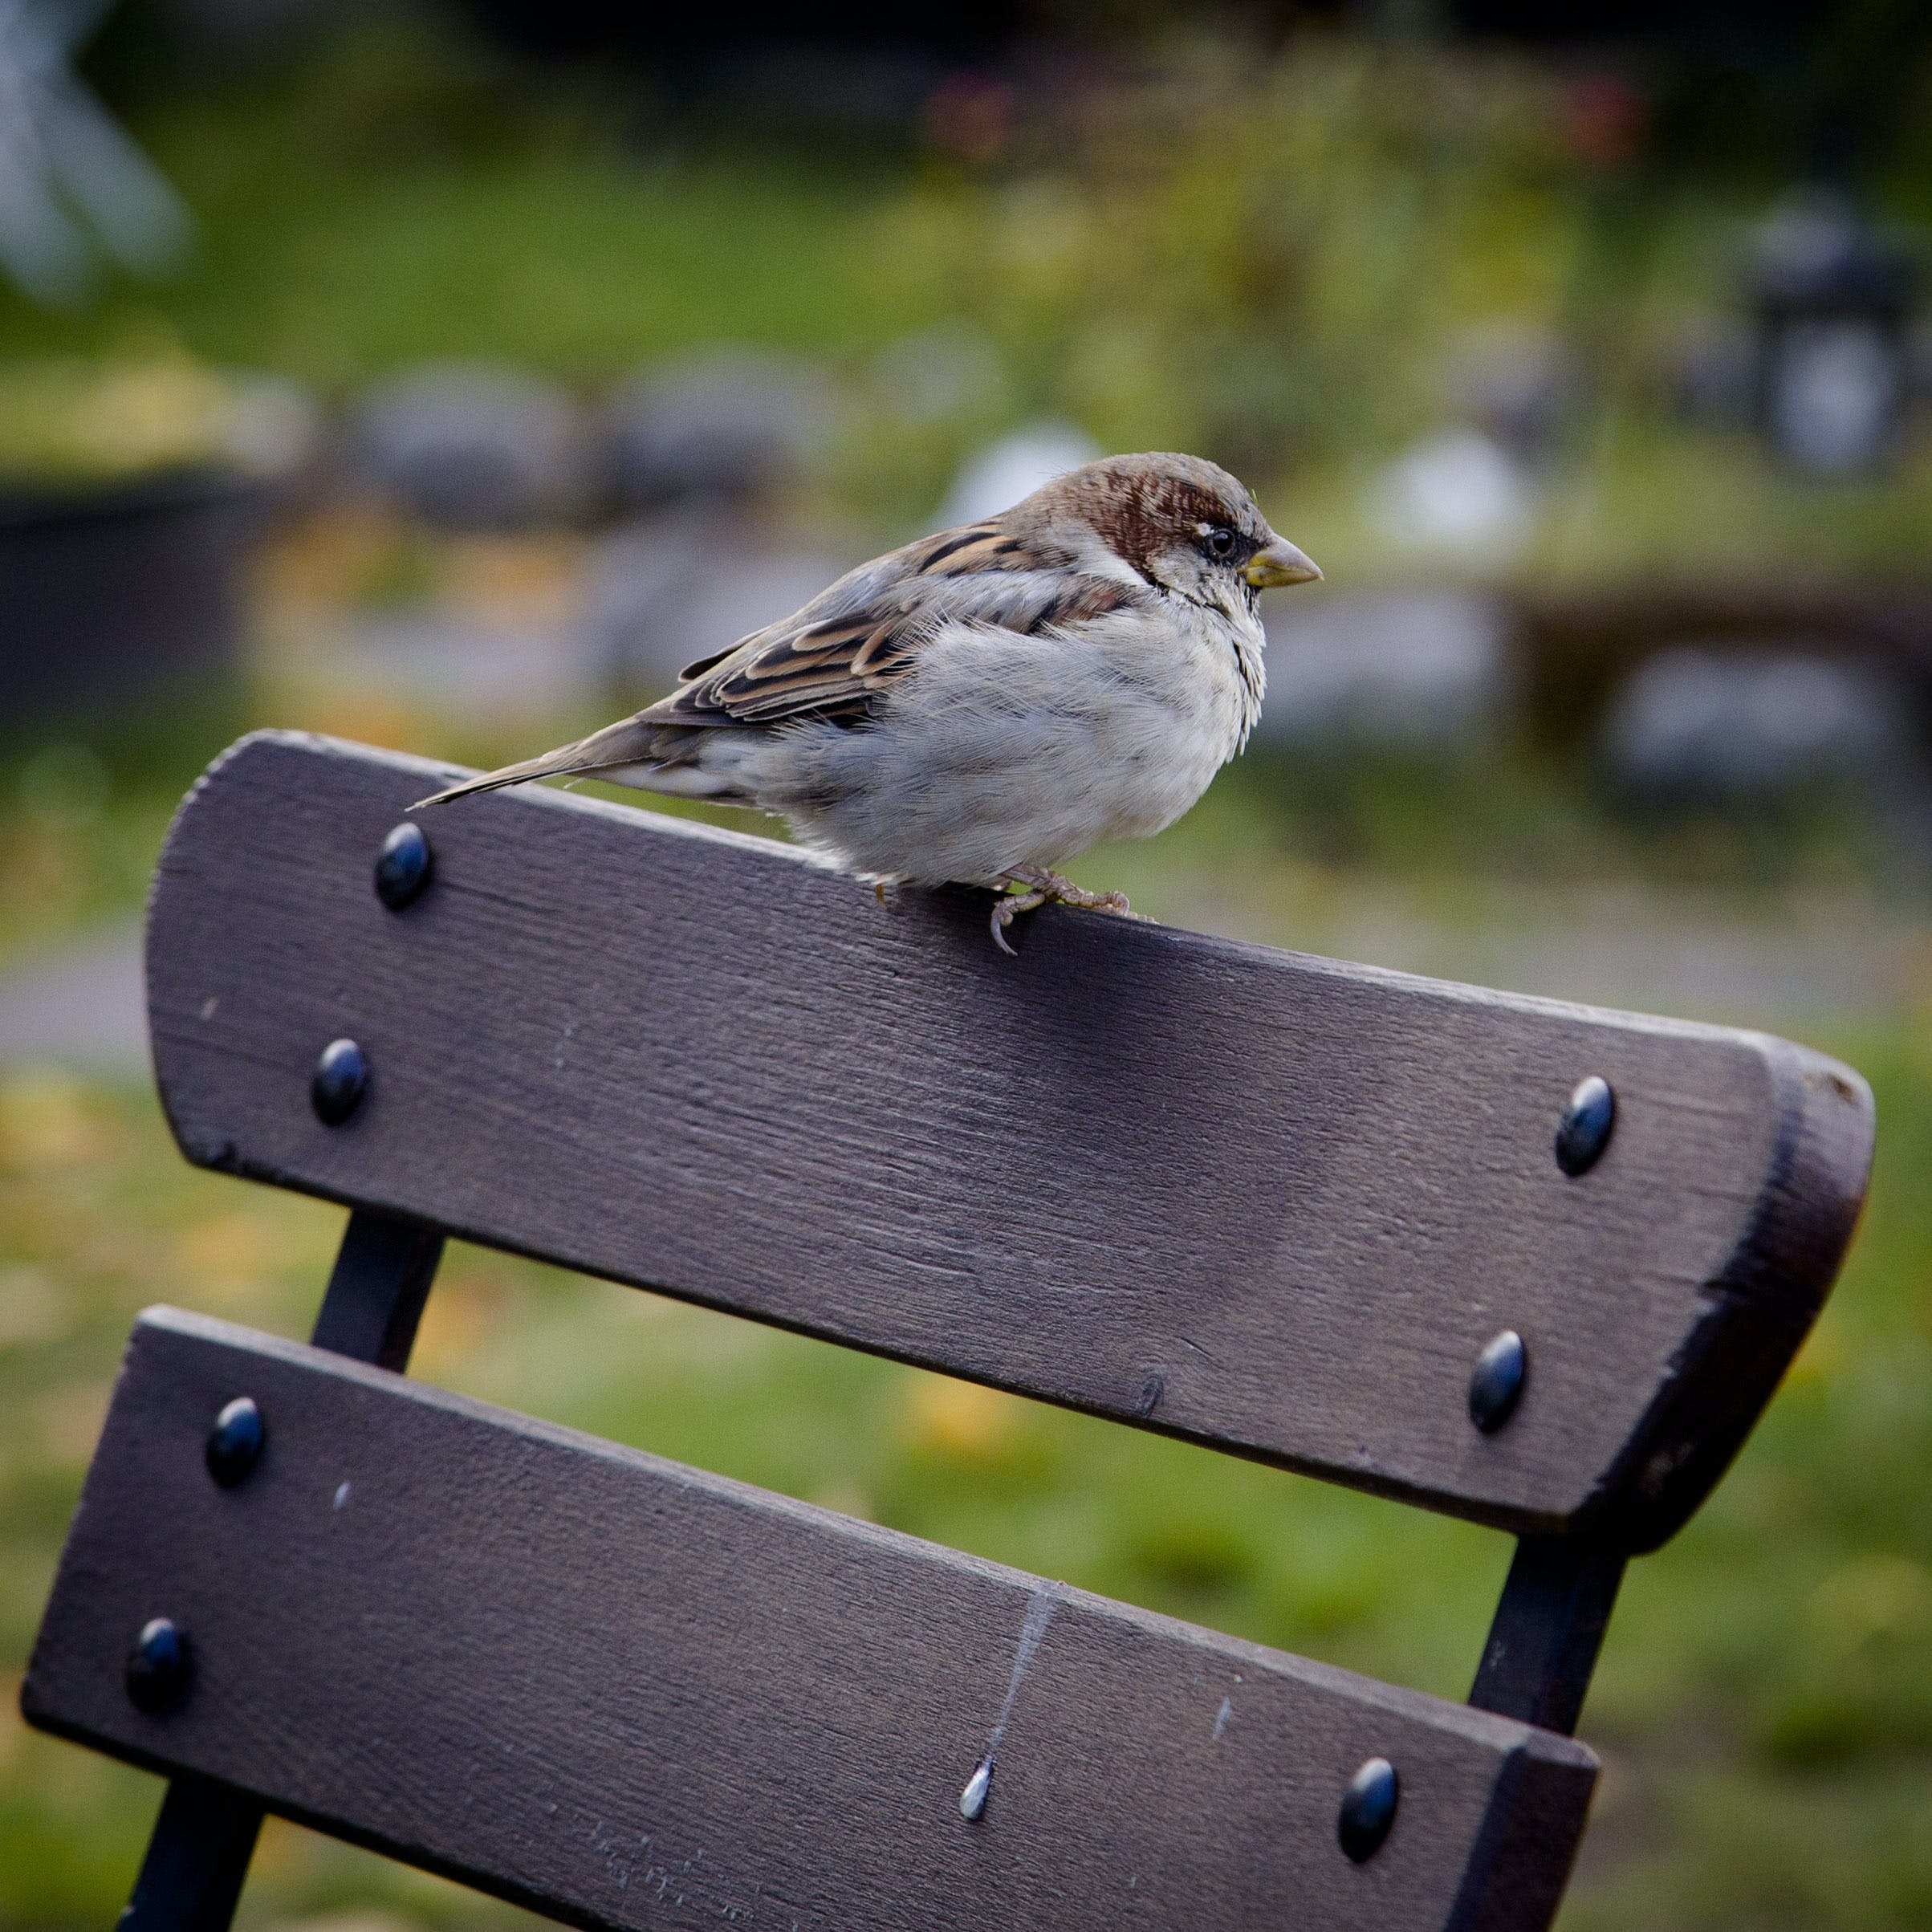 White and Brown Bird on Bench